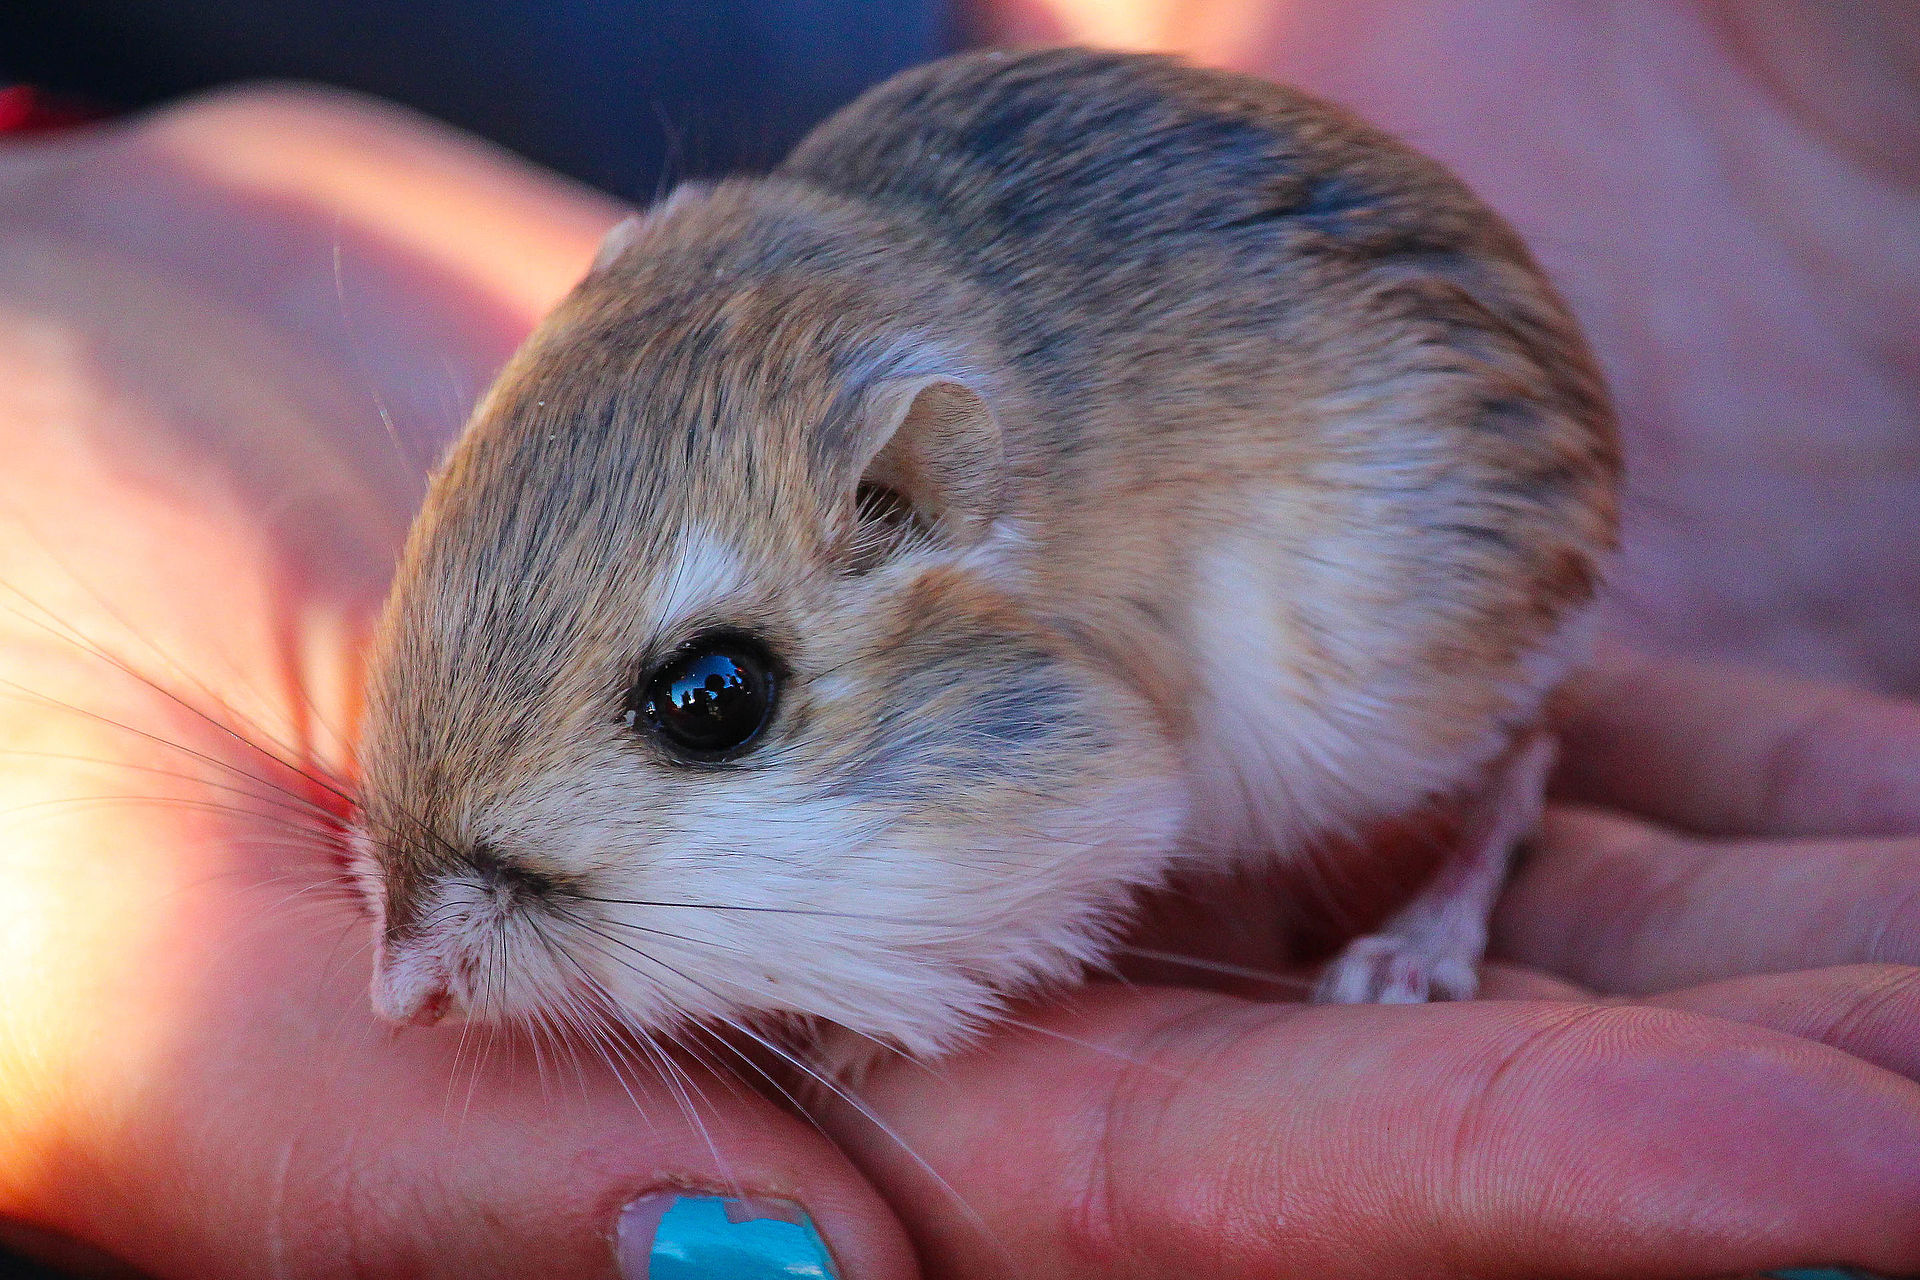 Merriam's kangaroo rat - Wikipedia